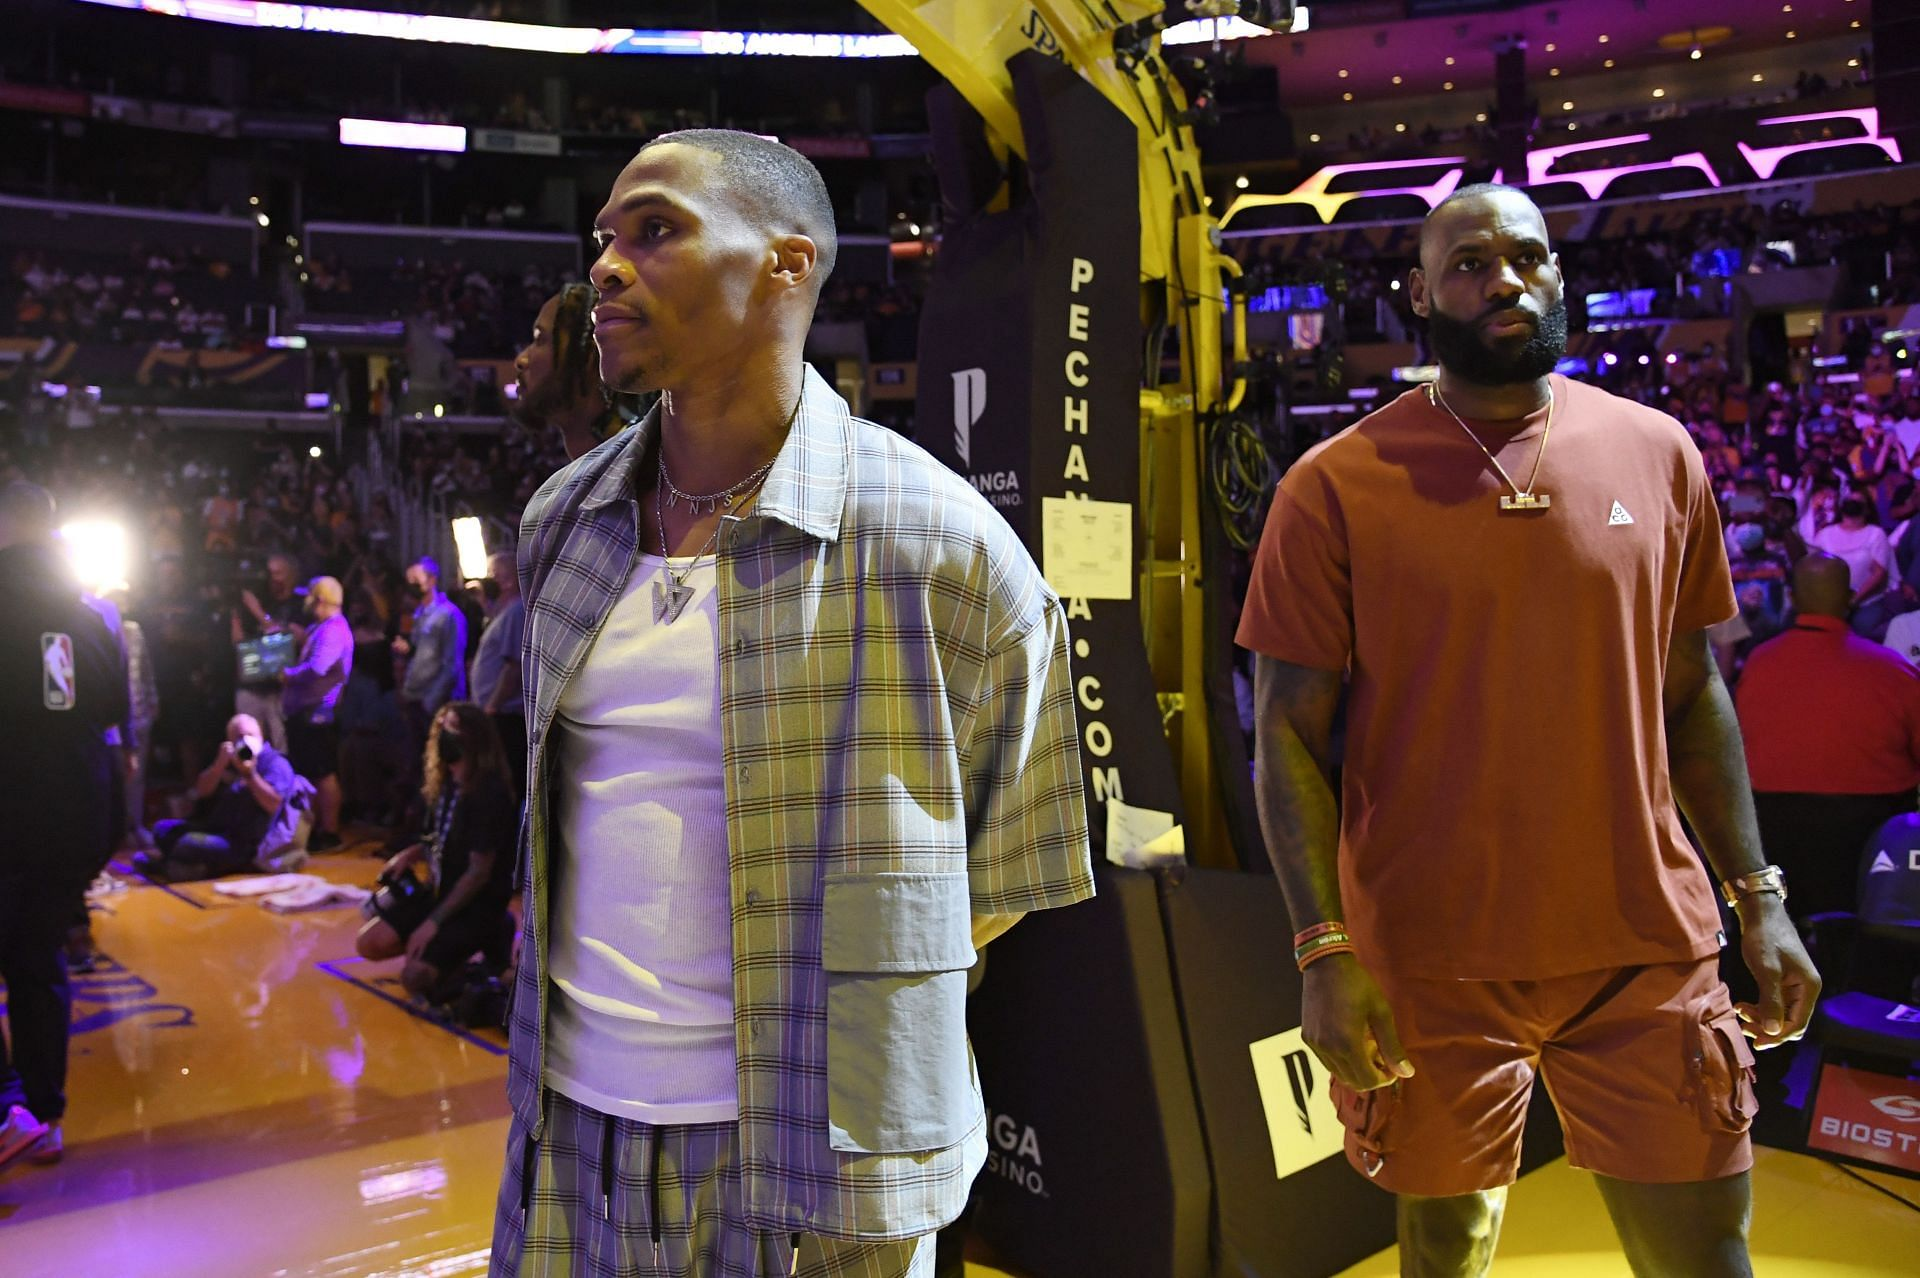 Lakers superstars Russell Westbrook and LeBron James